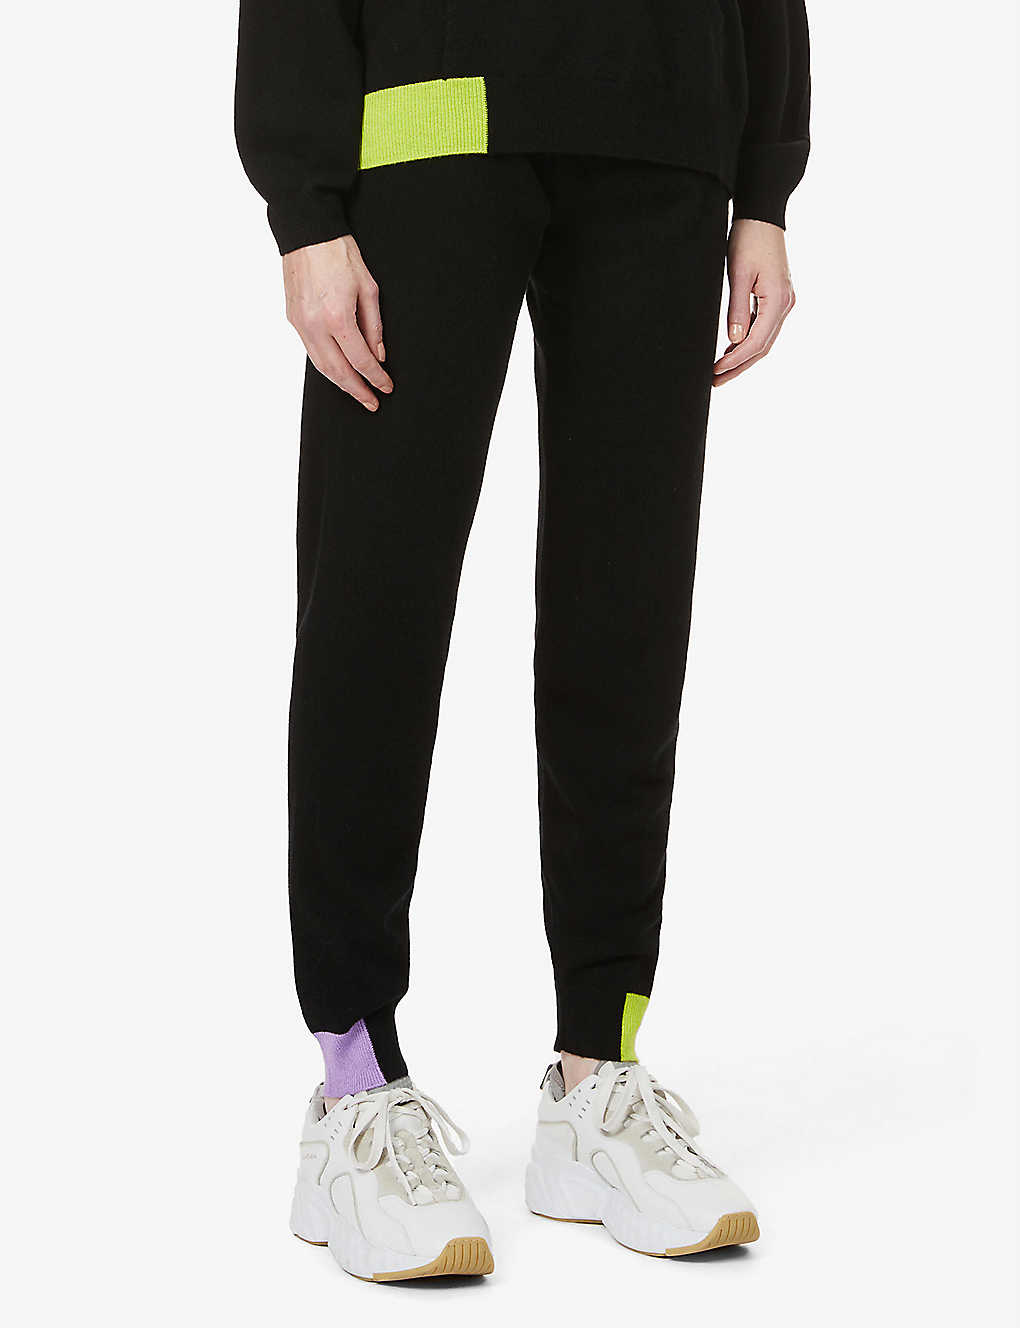 CHINTI AND PARKER: Contrast-trim cashmere jogging bottoms